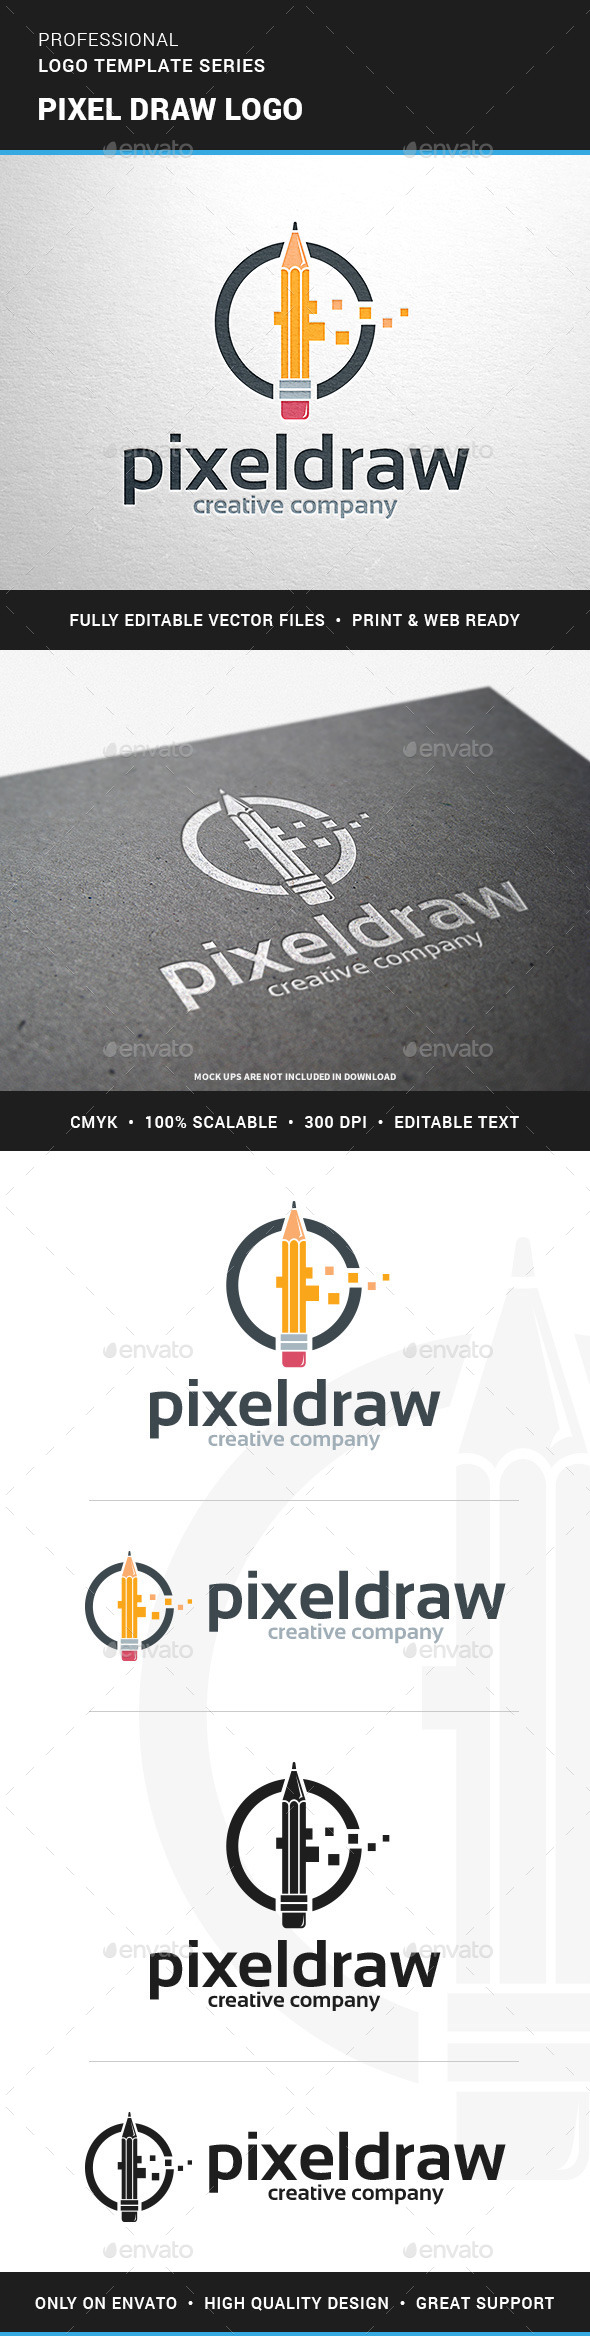 Pixel Draw Logo Template - Objects Logo Templates